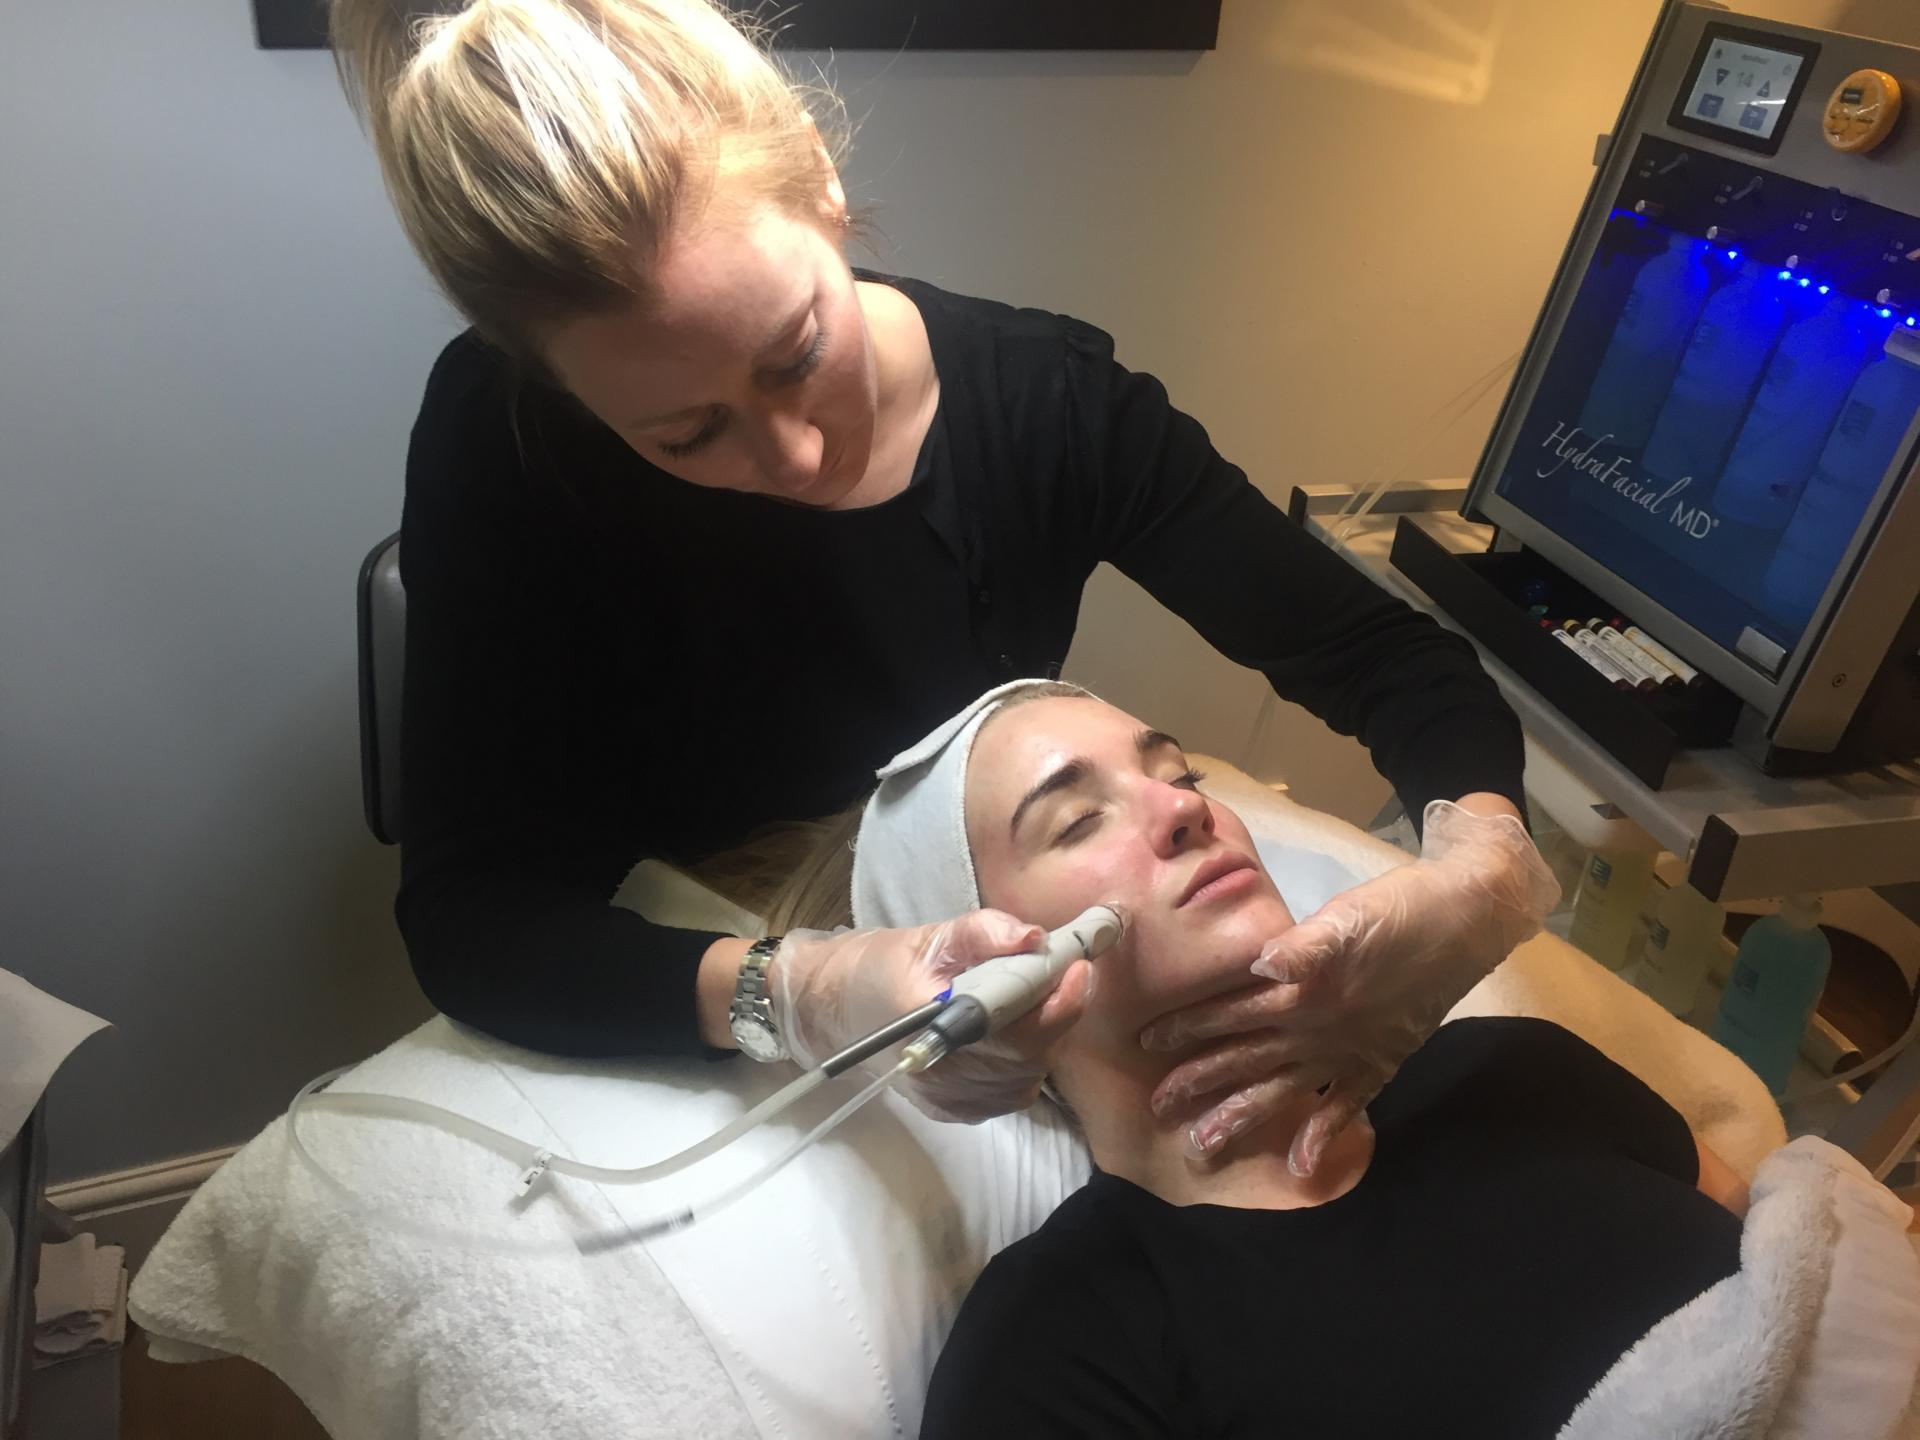 hydrafacial treatment cleansing